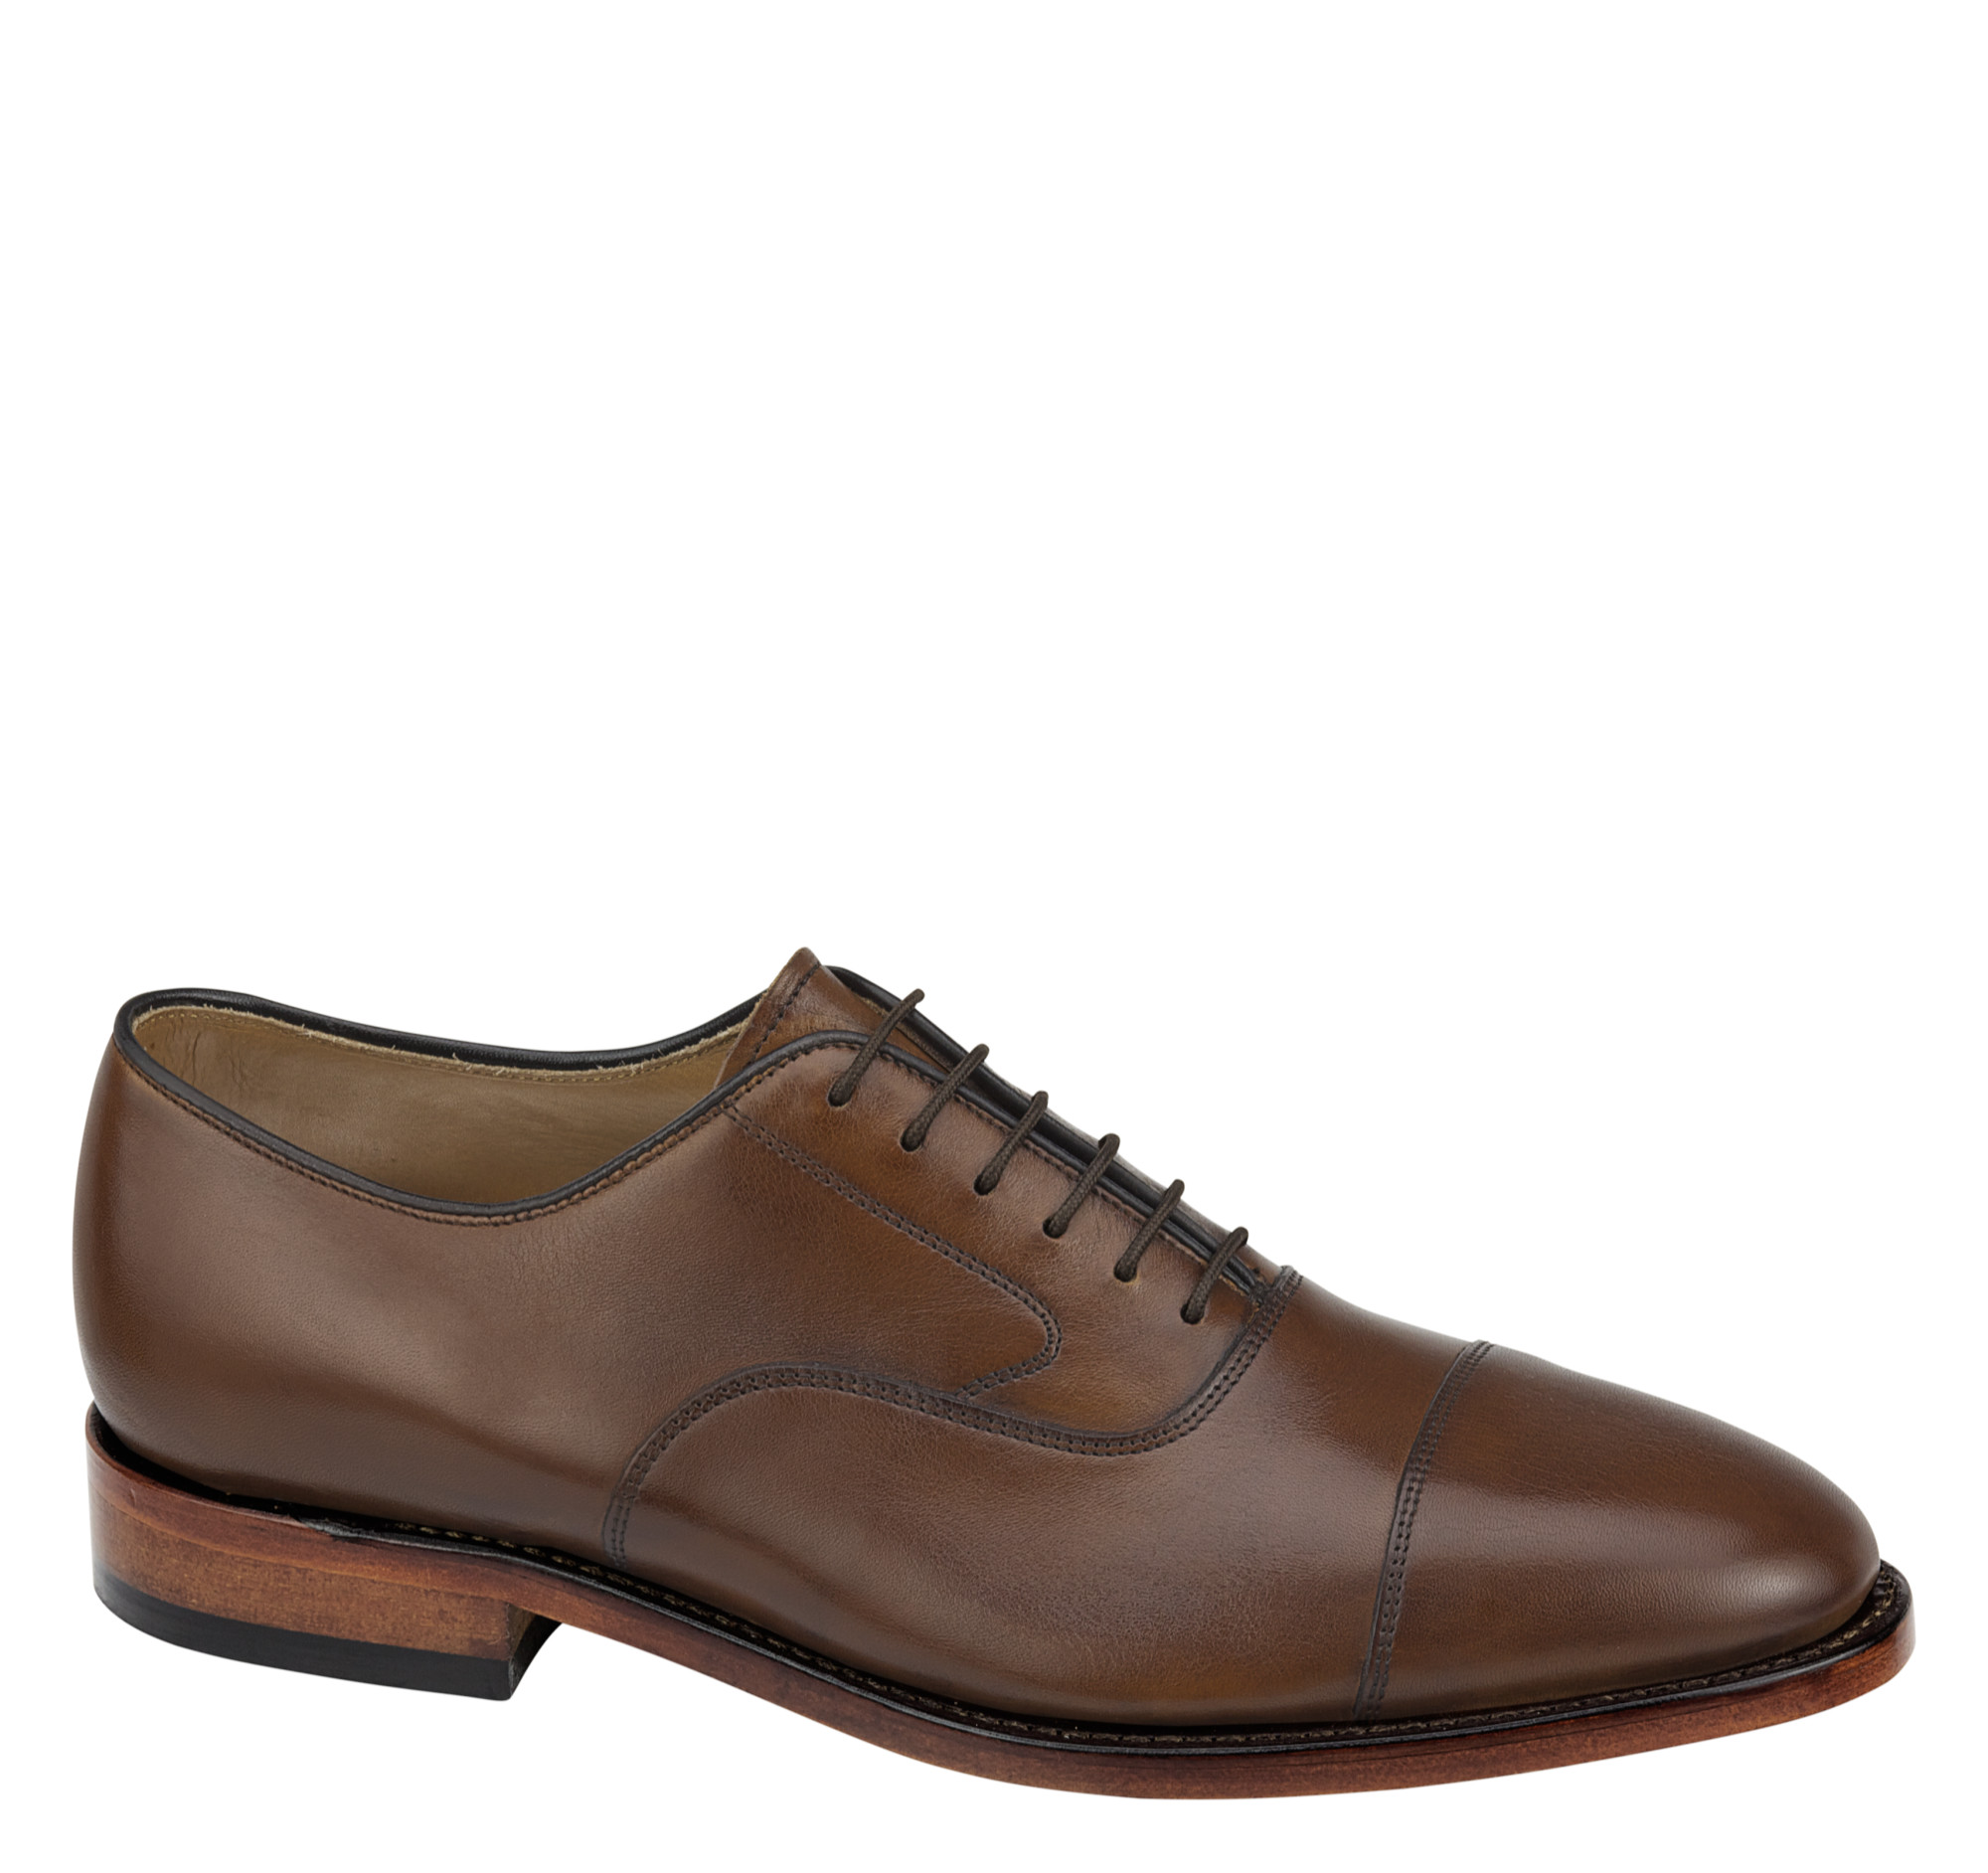 Melton Cap Toe - Johnston Murphy is the standard starter shoe for most consultants buying on a budget